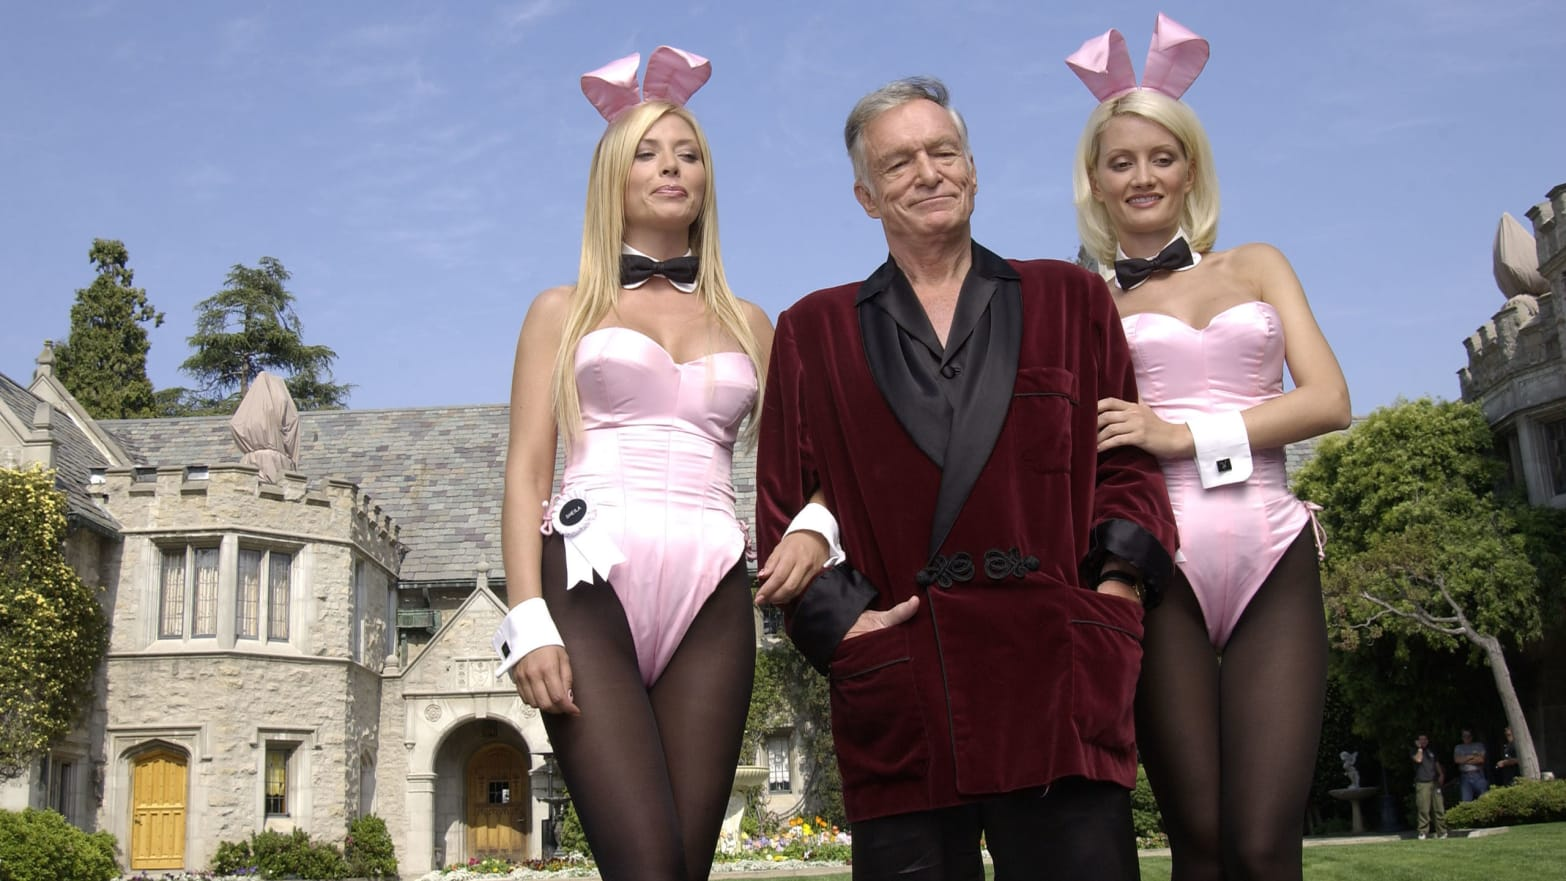 Why Hugh Hefner's Haters Won't Let Him Rest In Peace